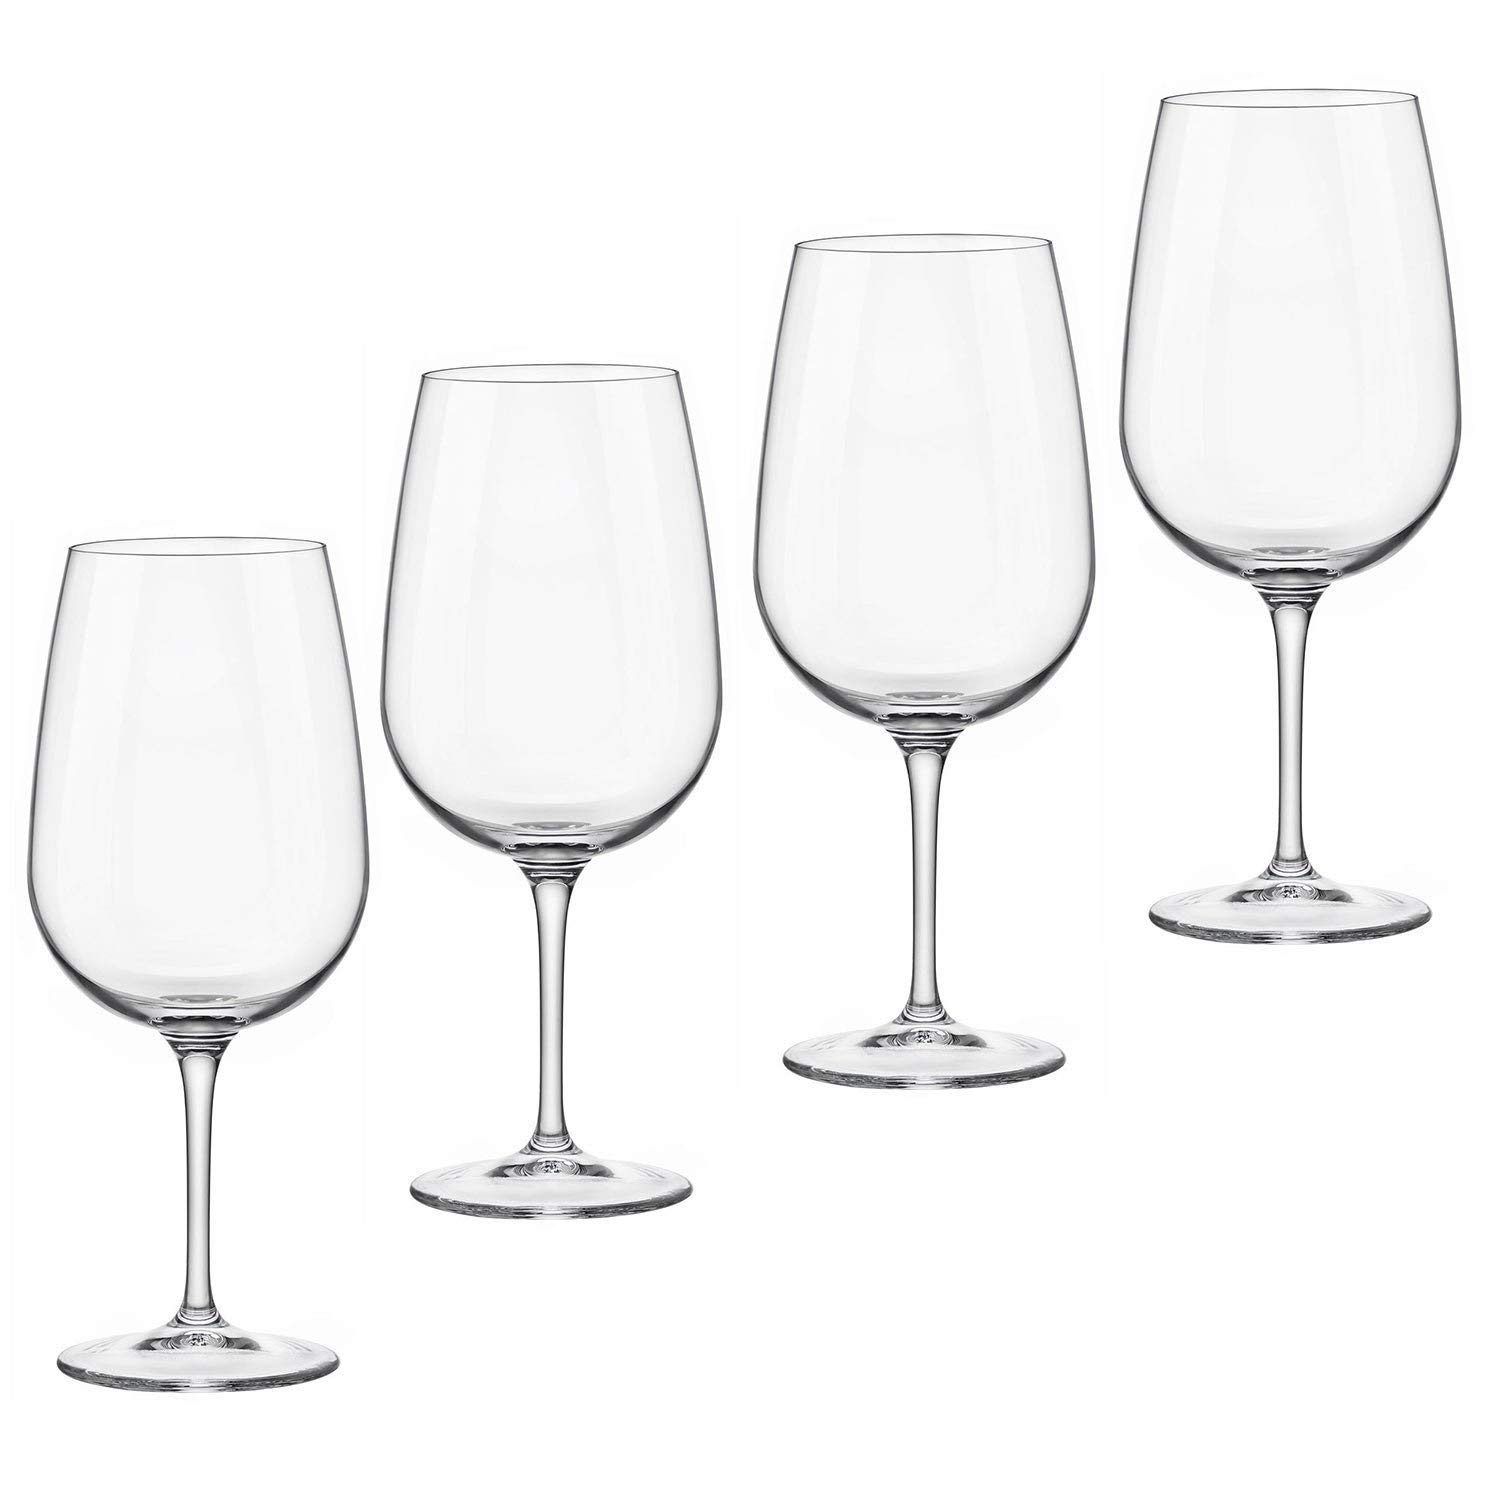 Bormioli Rocco Spazio 21.75 oz. Extra Large Wine Glass - Set of 4 - Great for Red Wine and White Wine - Great for Entertaining and as Gift - Lead Free Made in Italy Wine Glasses